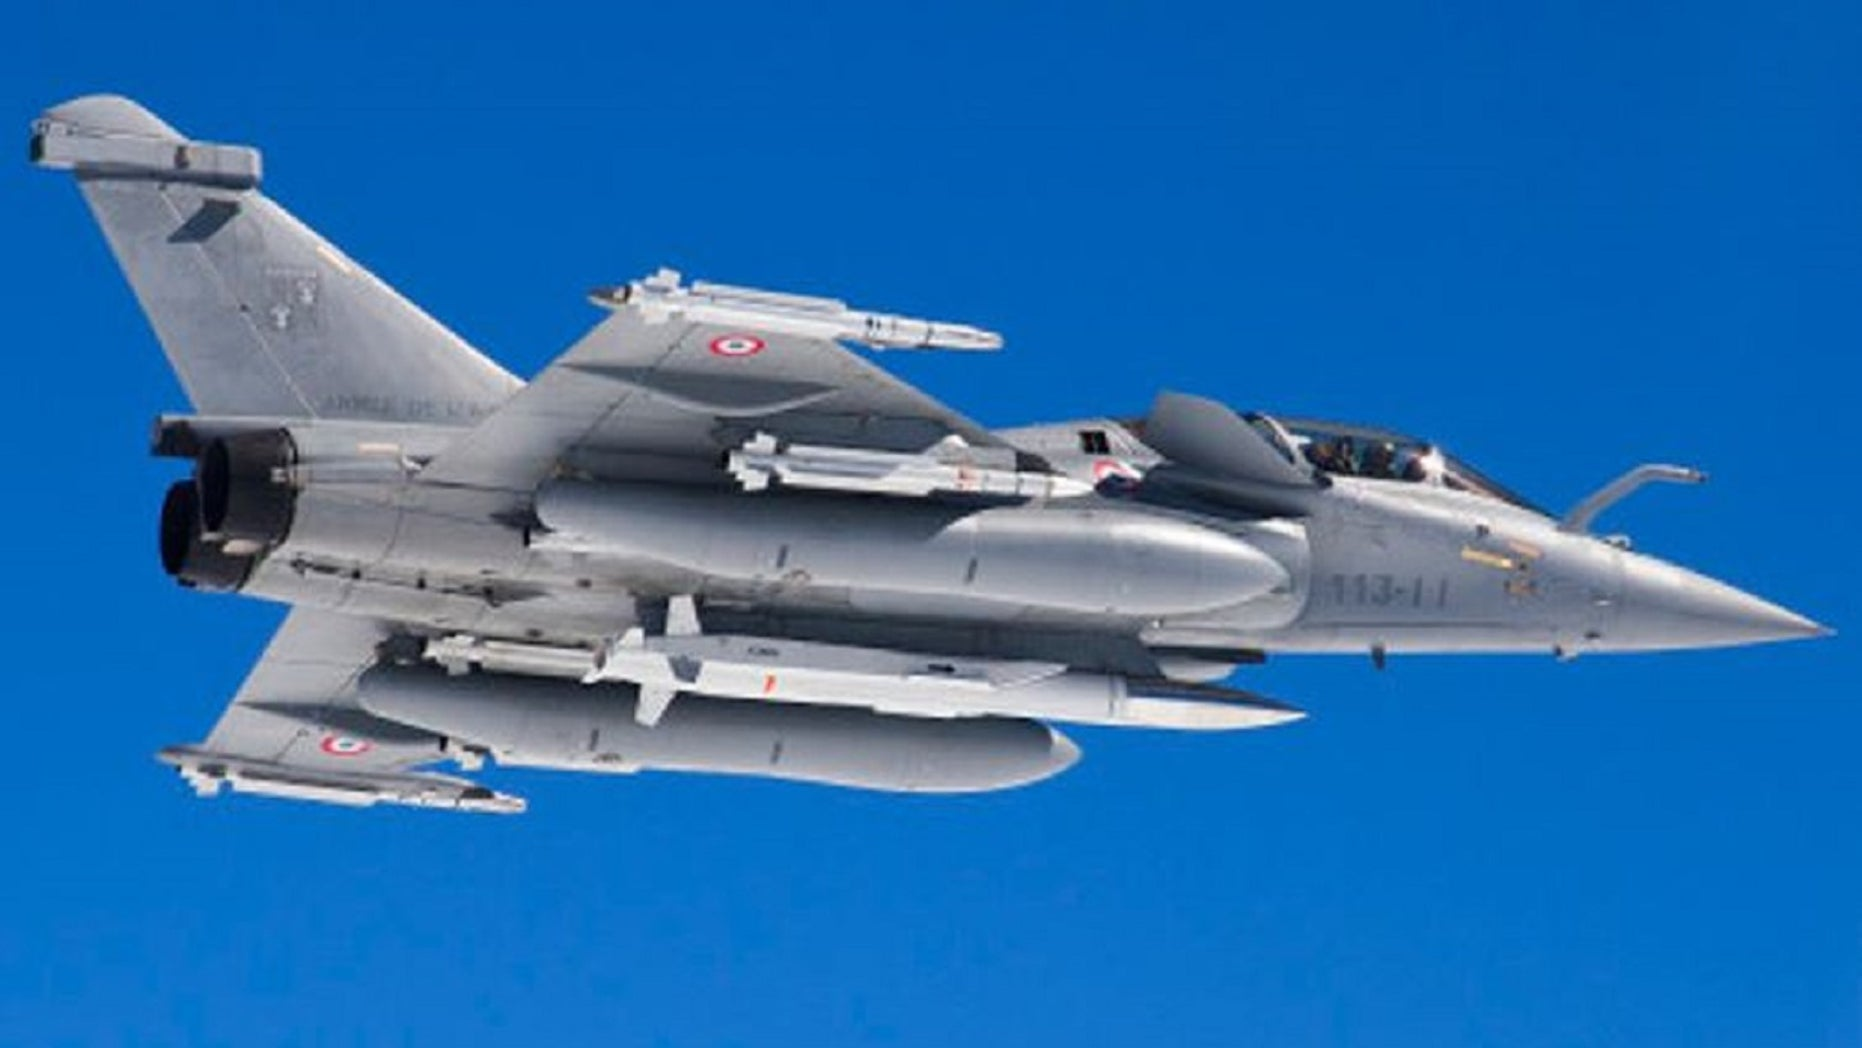 A French Rafale fighter jet equipped with nuclear cruise missiles.